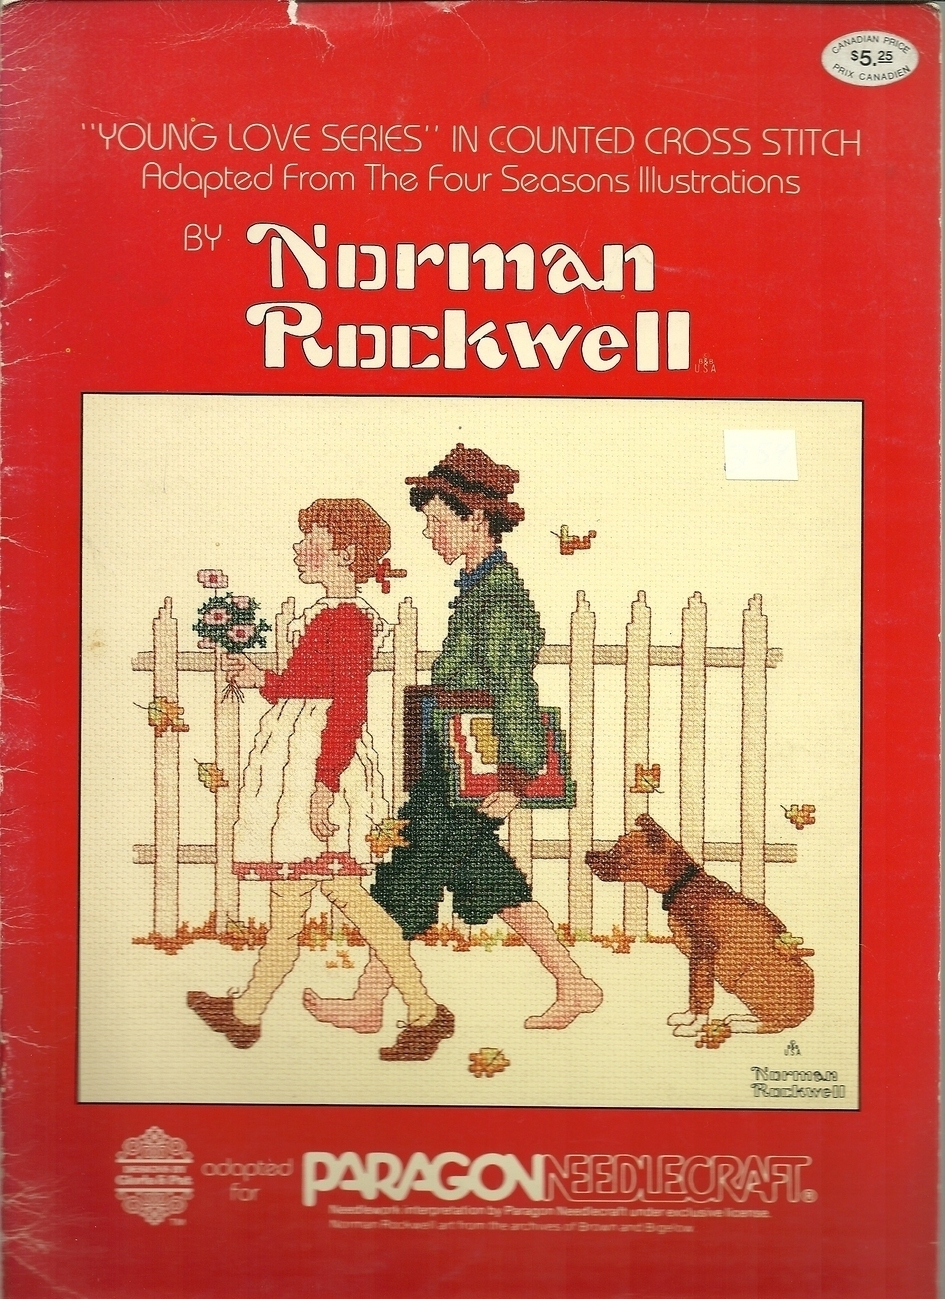 Norman rockwell   young love  1